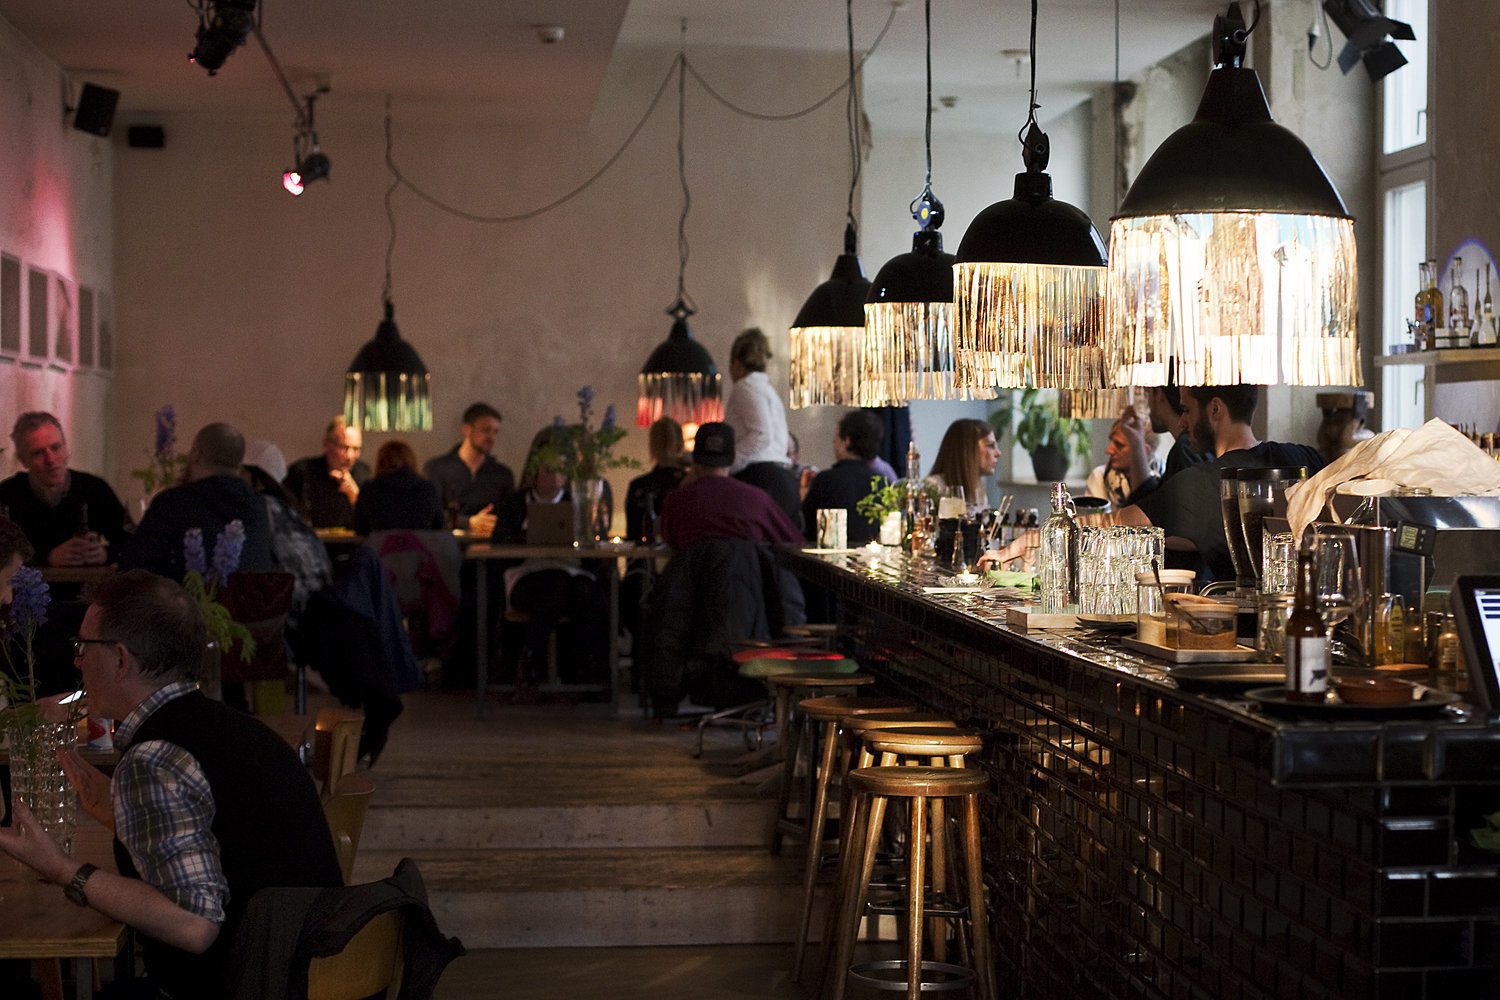 Michelberger Hotel: A Work-Friendly Place in Berlin